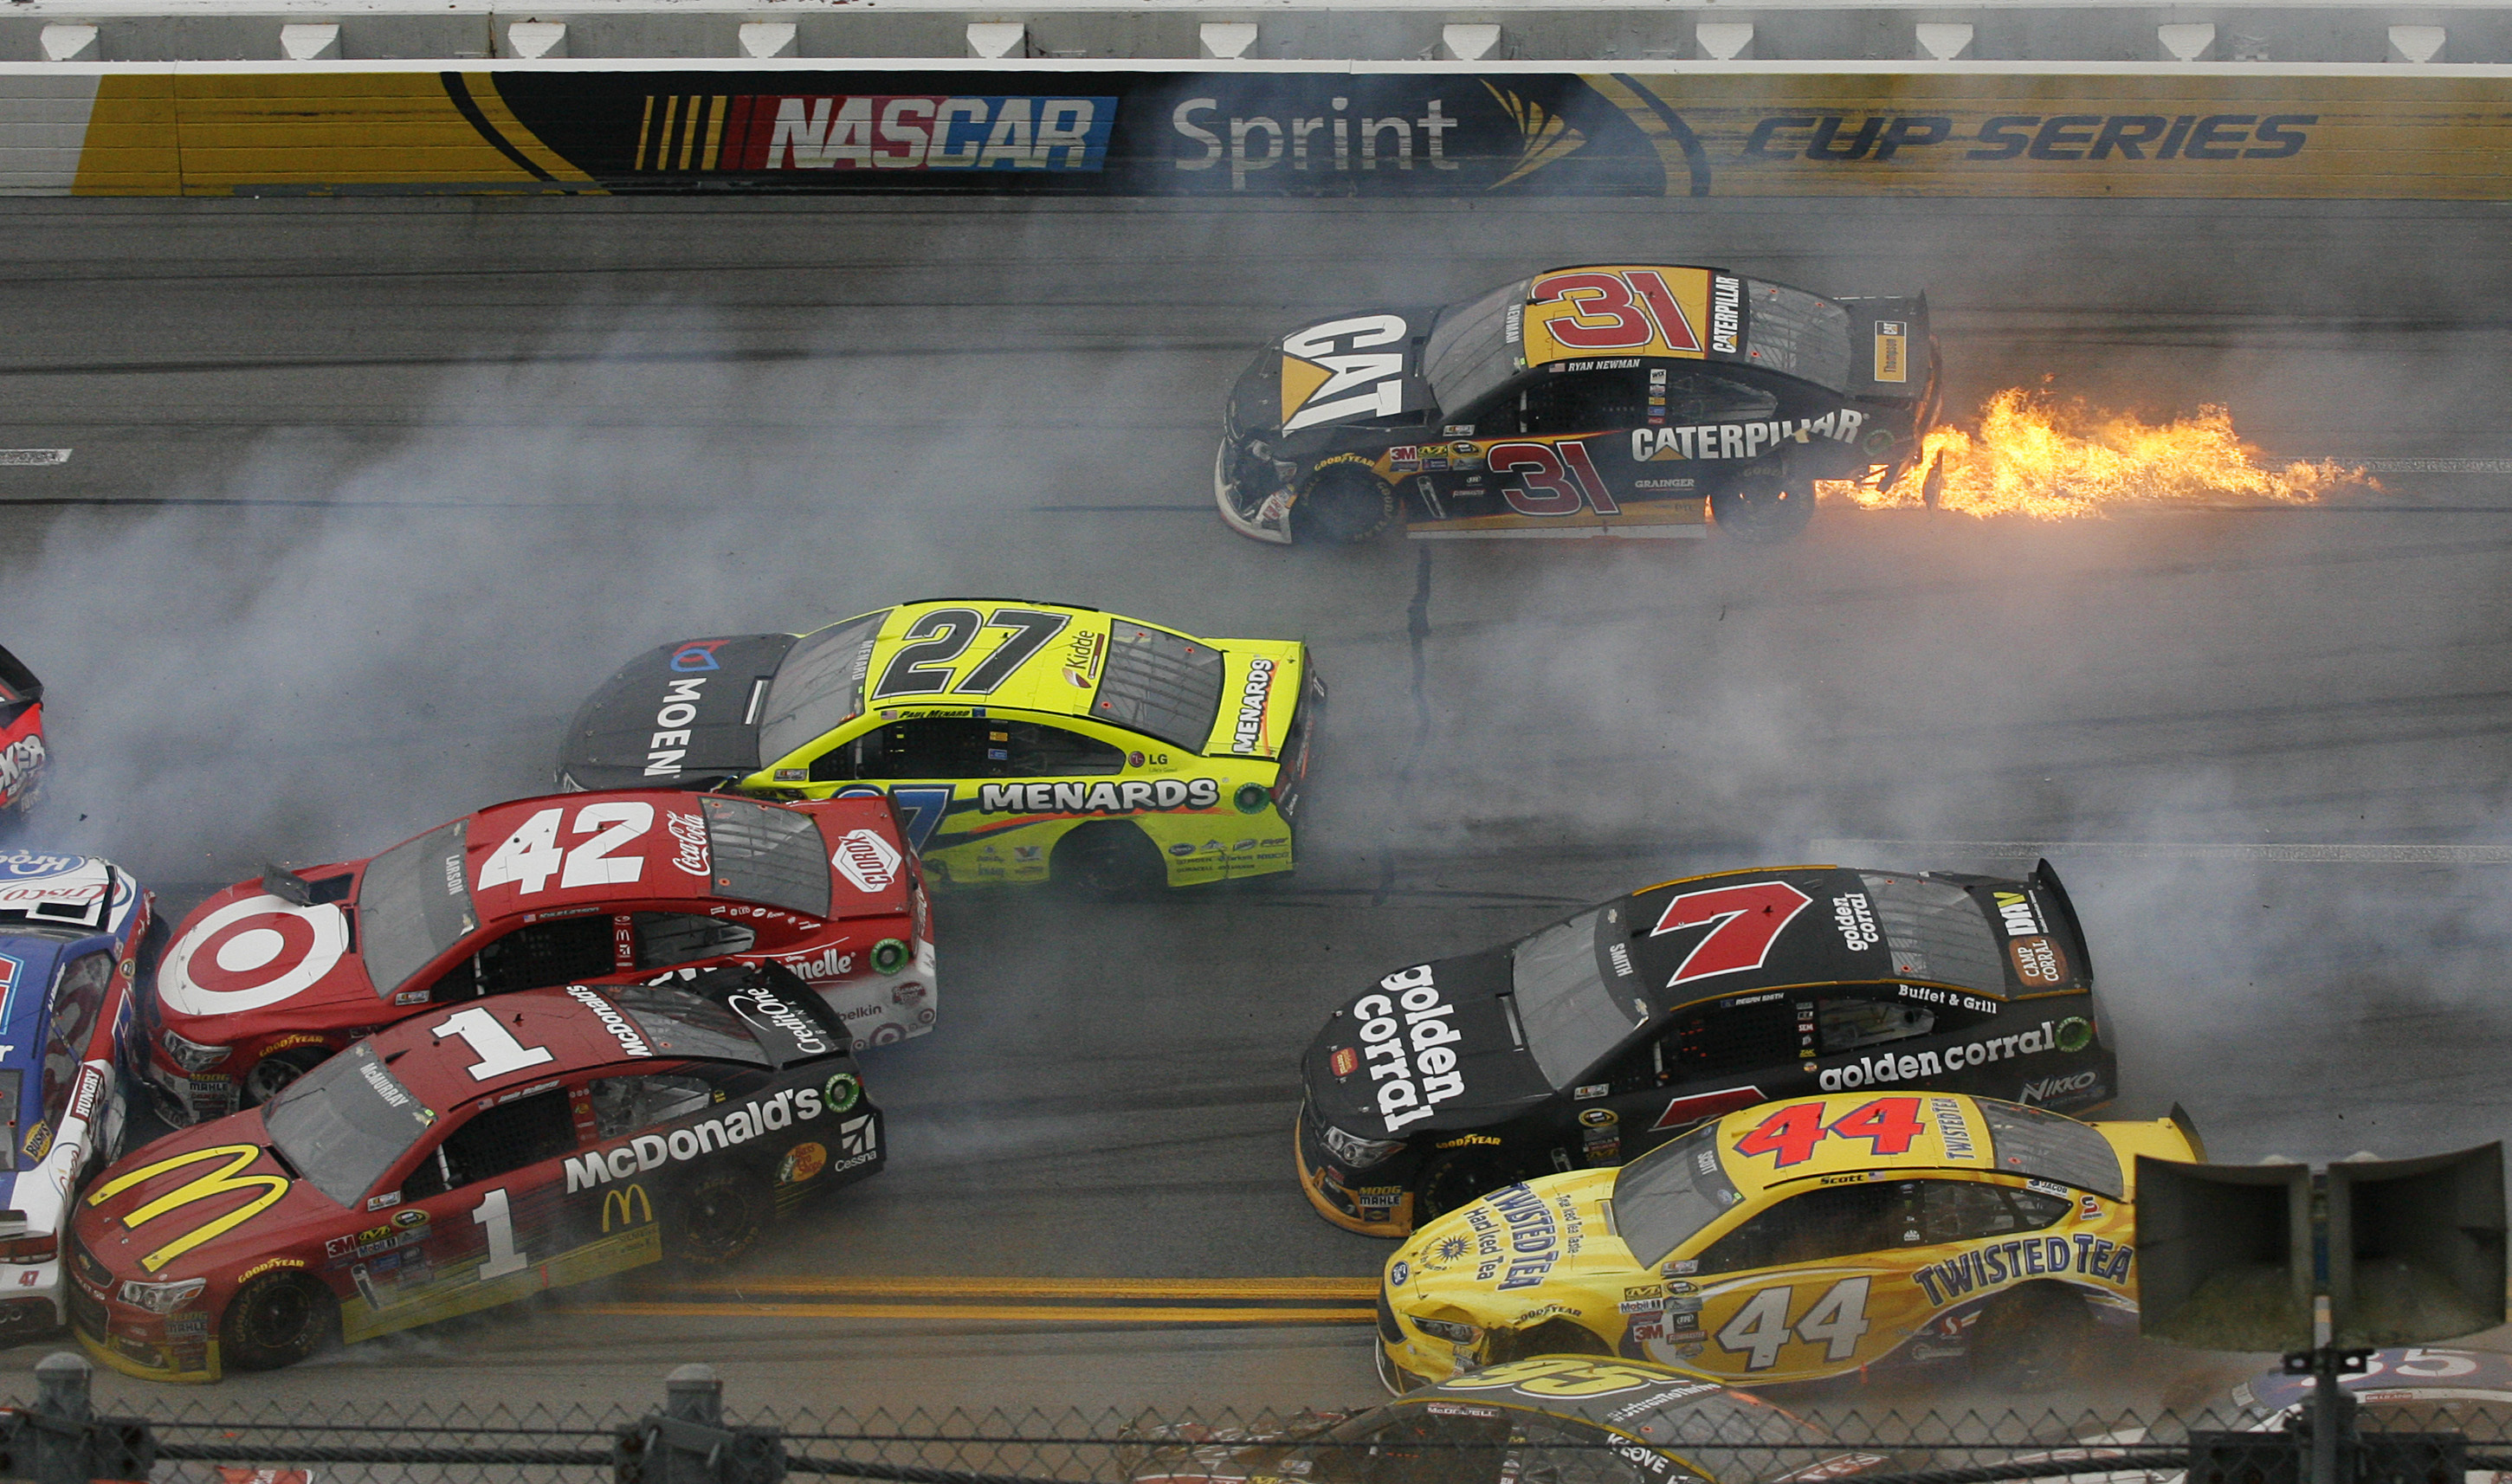 Flames trail from the car of Ryan Newman (31) after a pileup of crashed cars around the track during the NASCAR Talladega auto race at Talladega Superspeedway, Sunday, May 1, 2016, in Talladega, Ala. (AP Photo/Skip Williams)